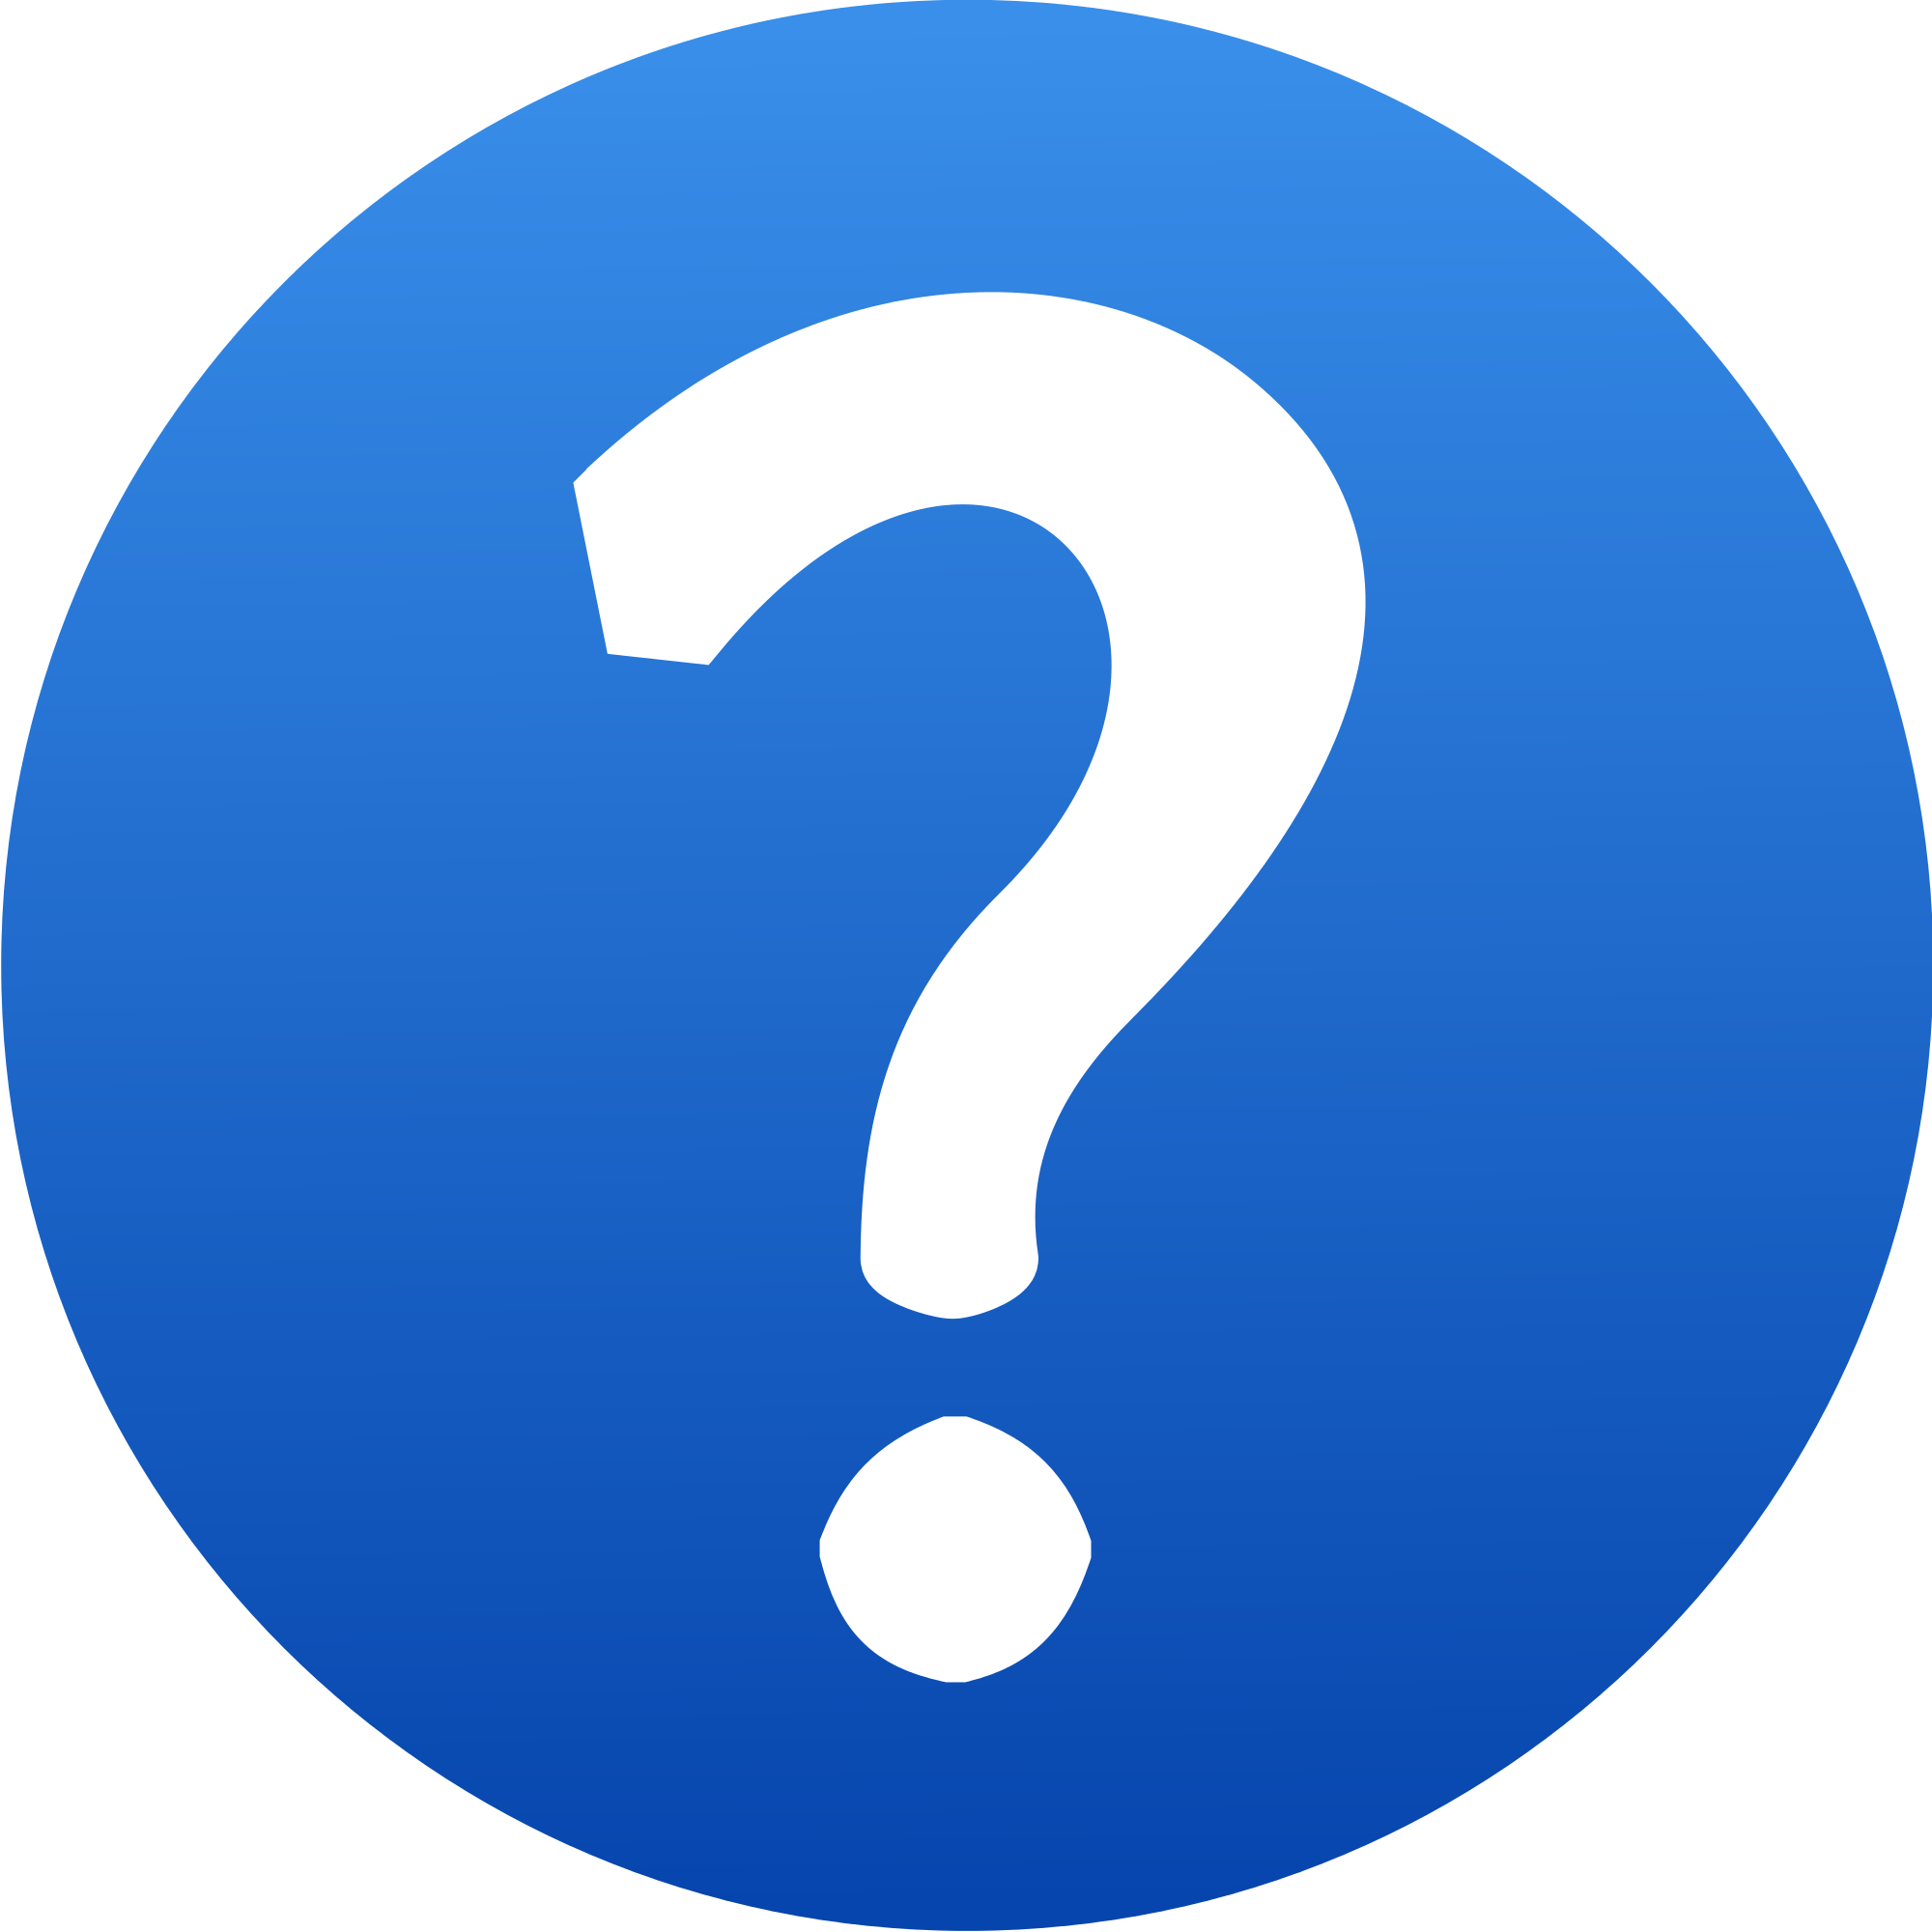 File blue svg wikimedia. Question mark icon png